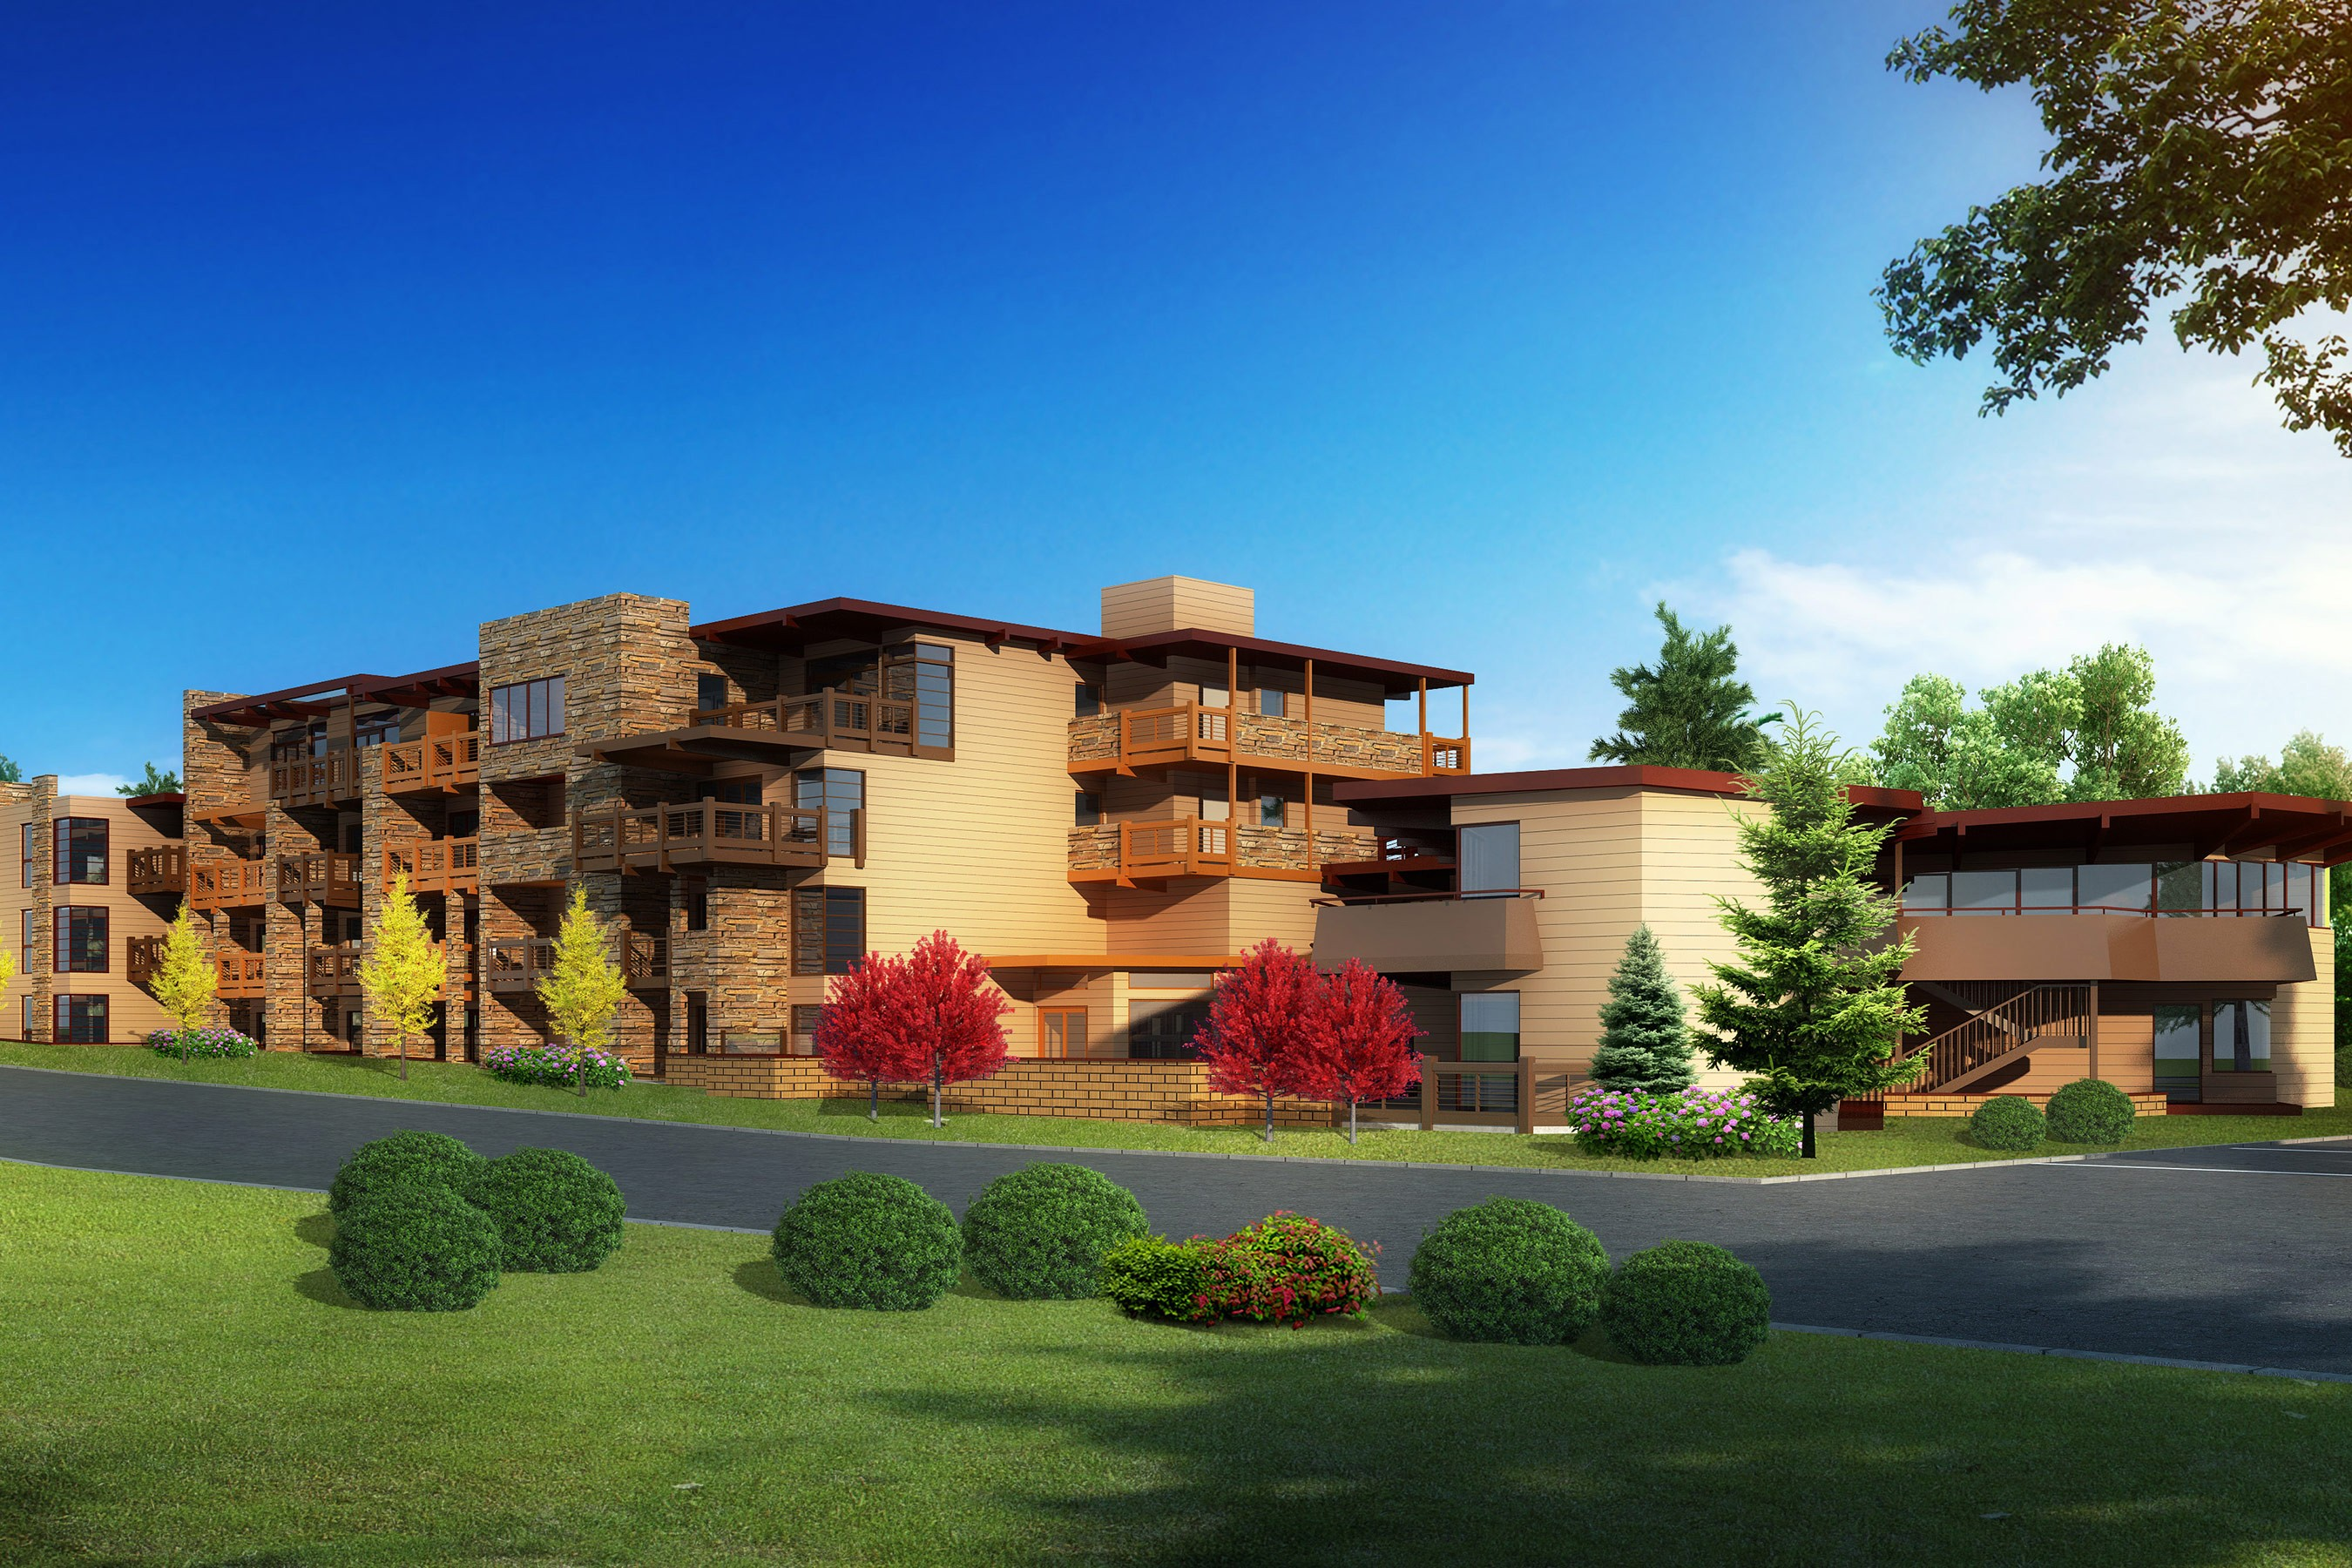 Condominium for Sale at Boomerang Lodge 500 W. Hopkins Avenue Unit 110 Aspen, Colorado, 81611 United States